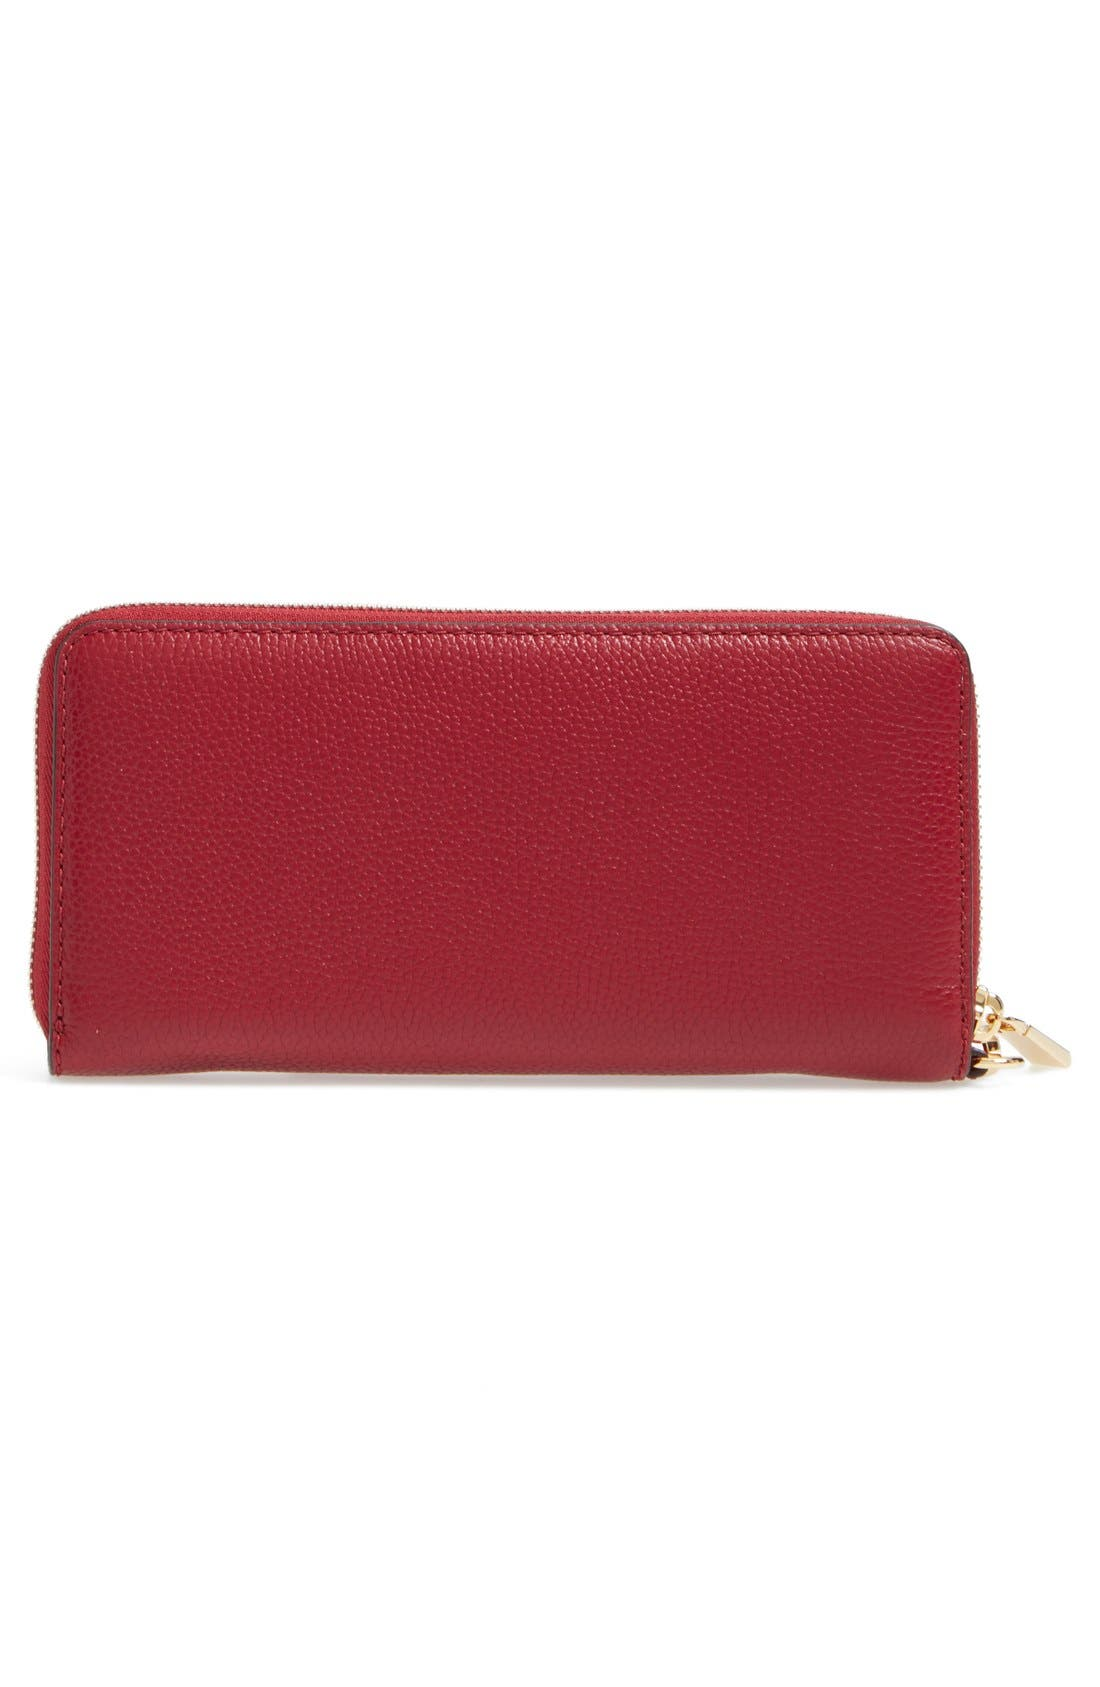 'Mercer' Leather Continental Wallet,                             Alternate thumbnail 38, color,